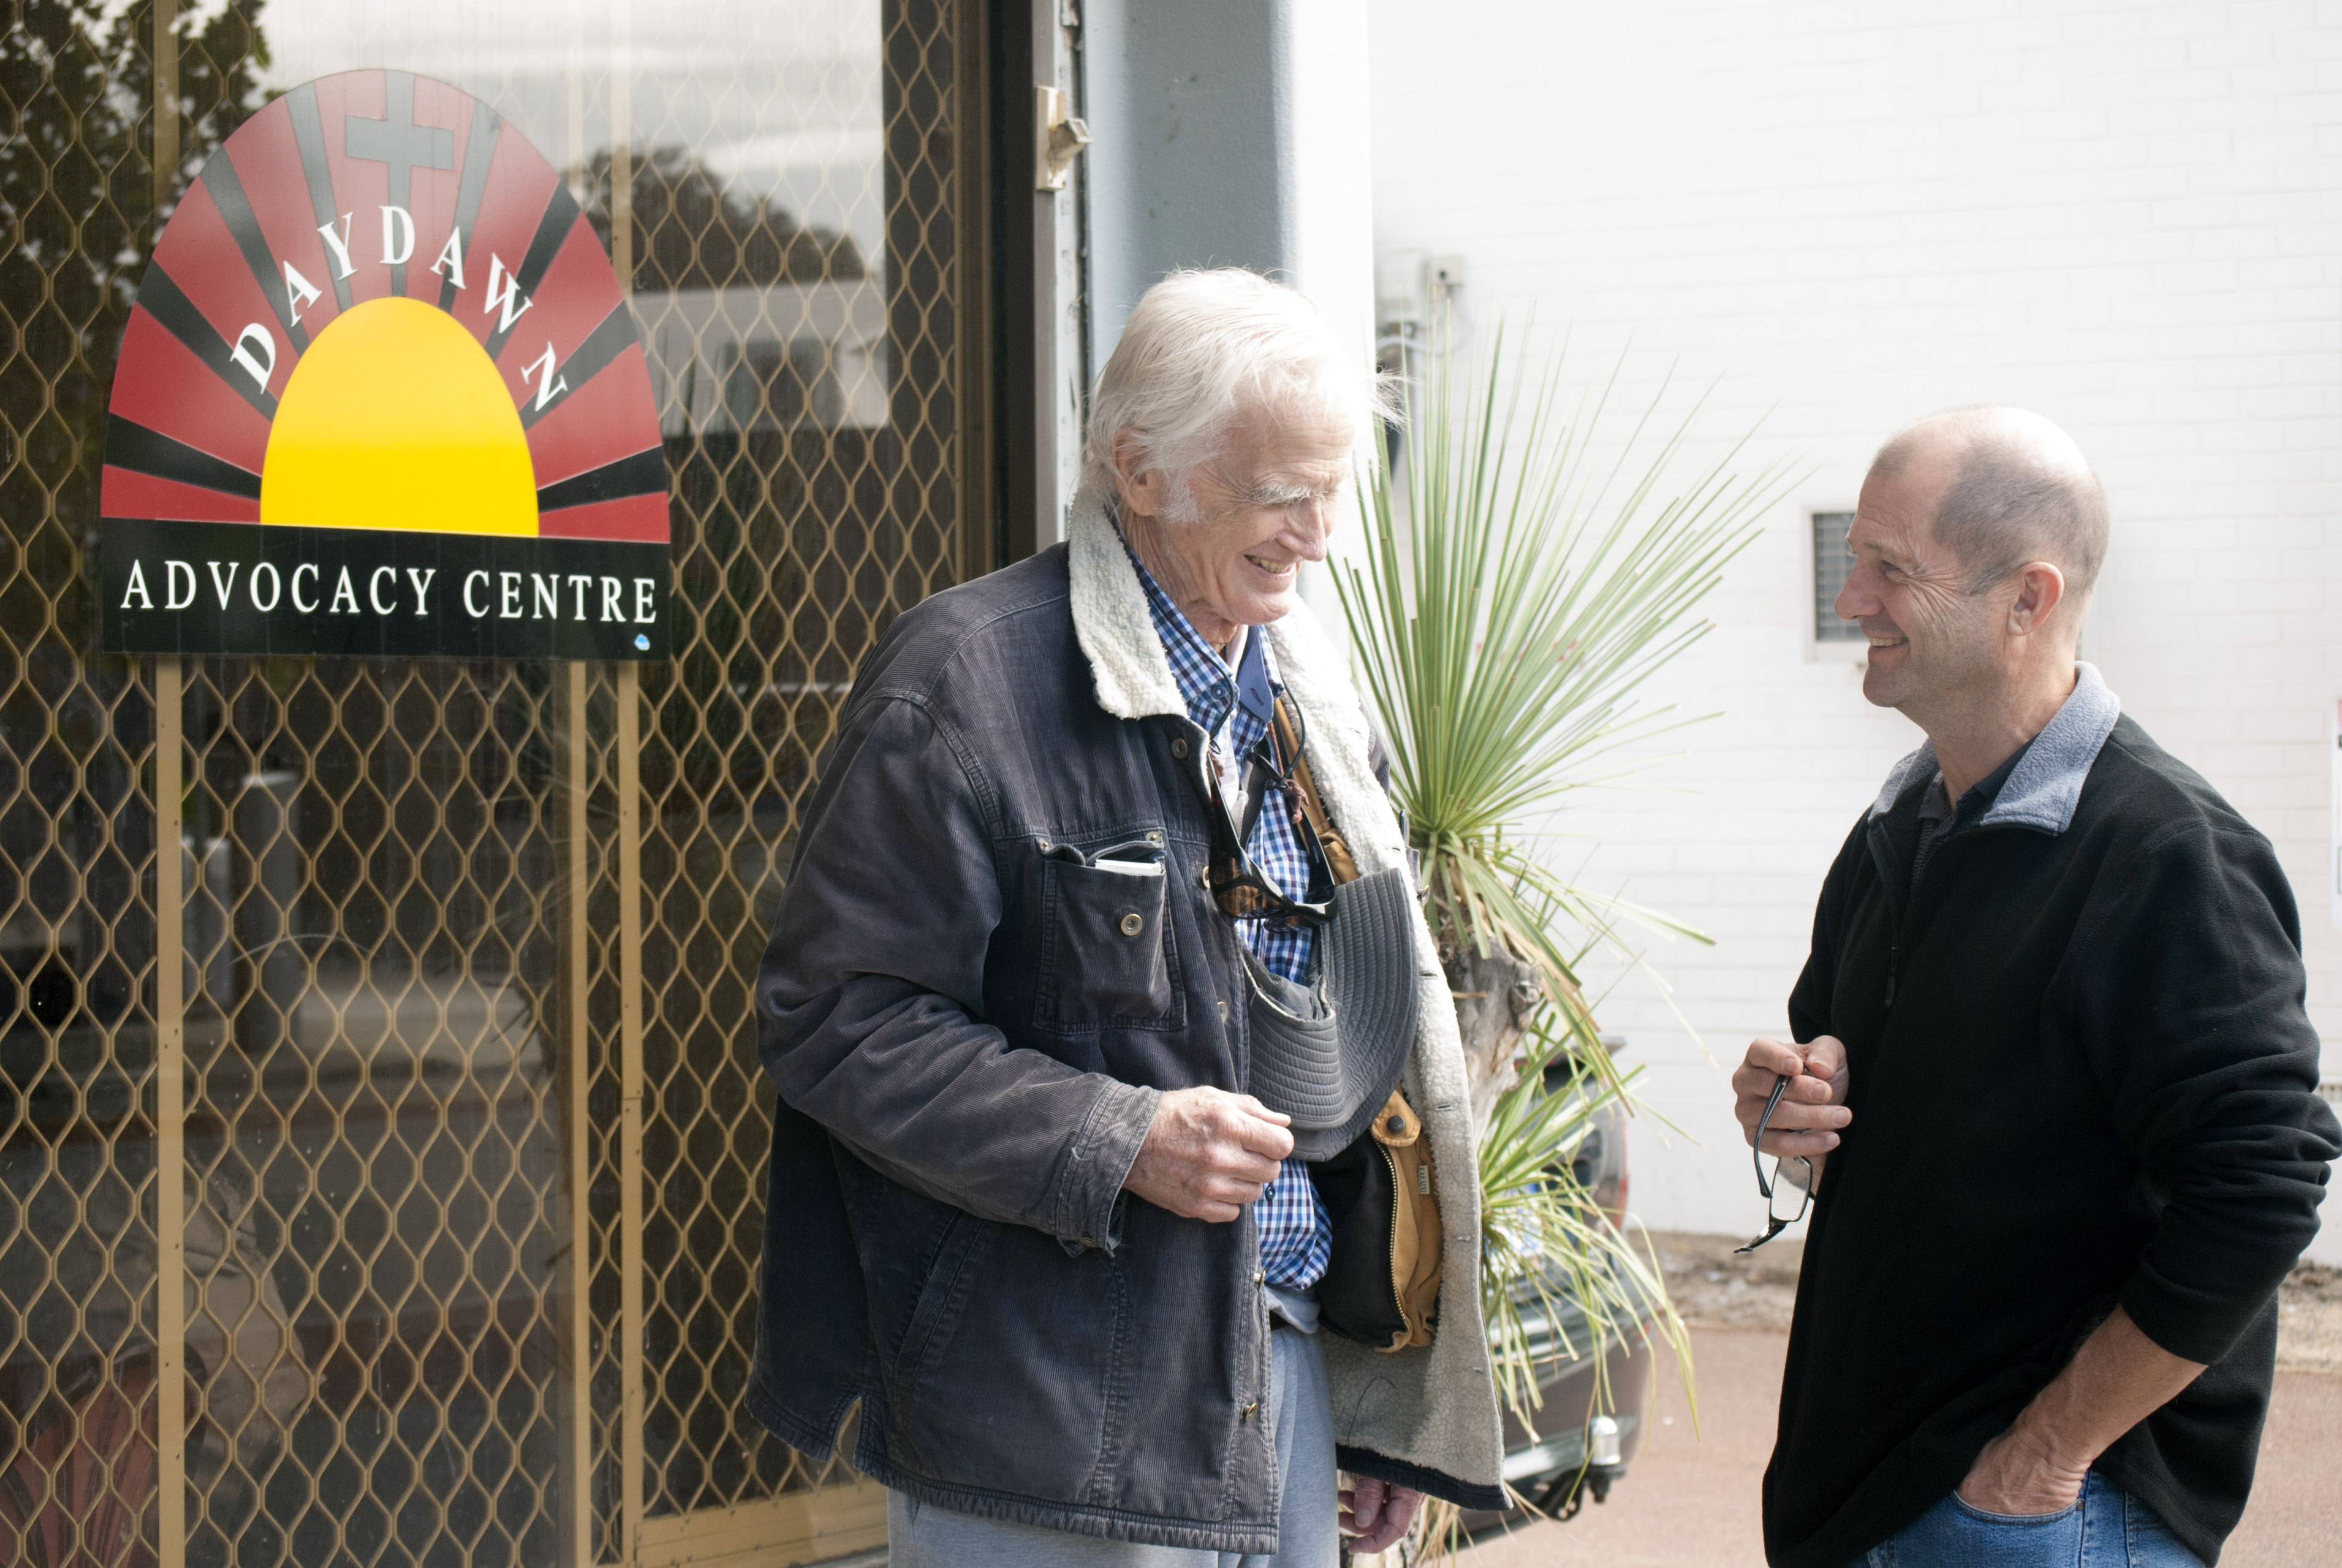 Daydawn Advocacy Centre volunteer David Buchanan and Director Mark Reidy share a laugh. Photo: Rachel Curry